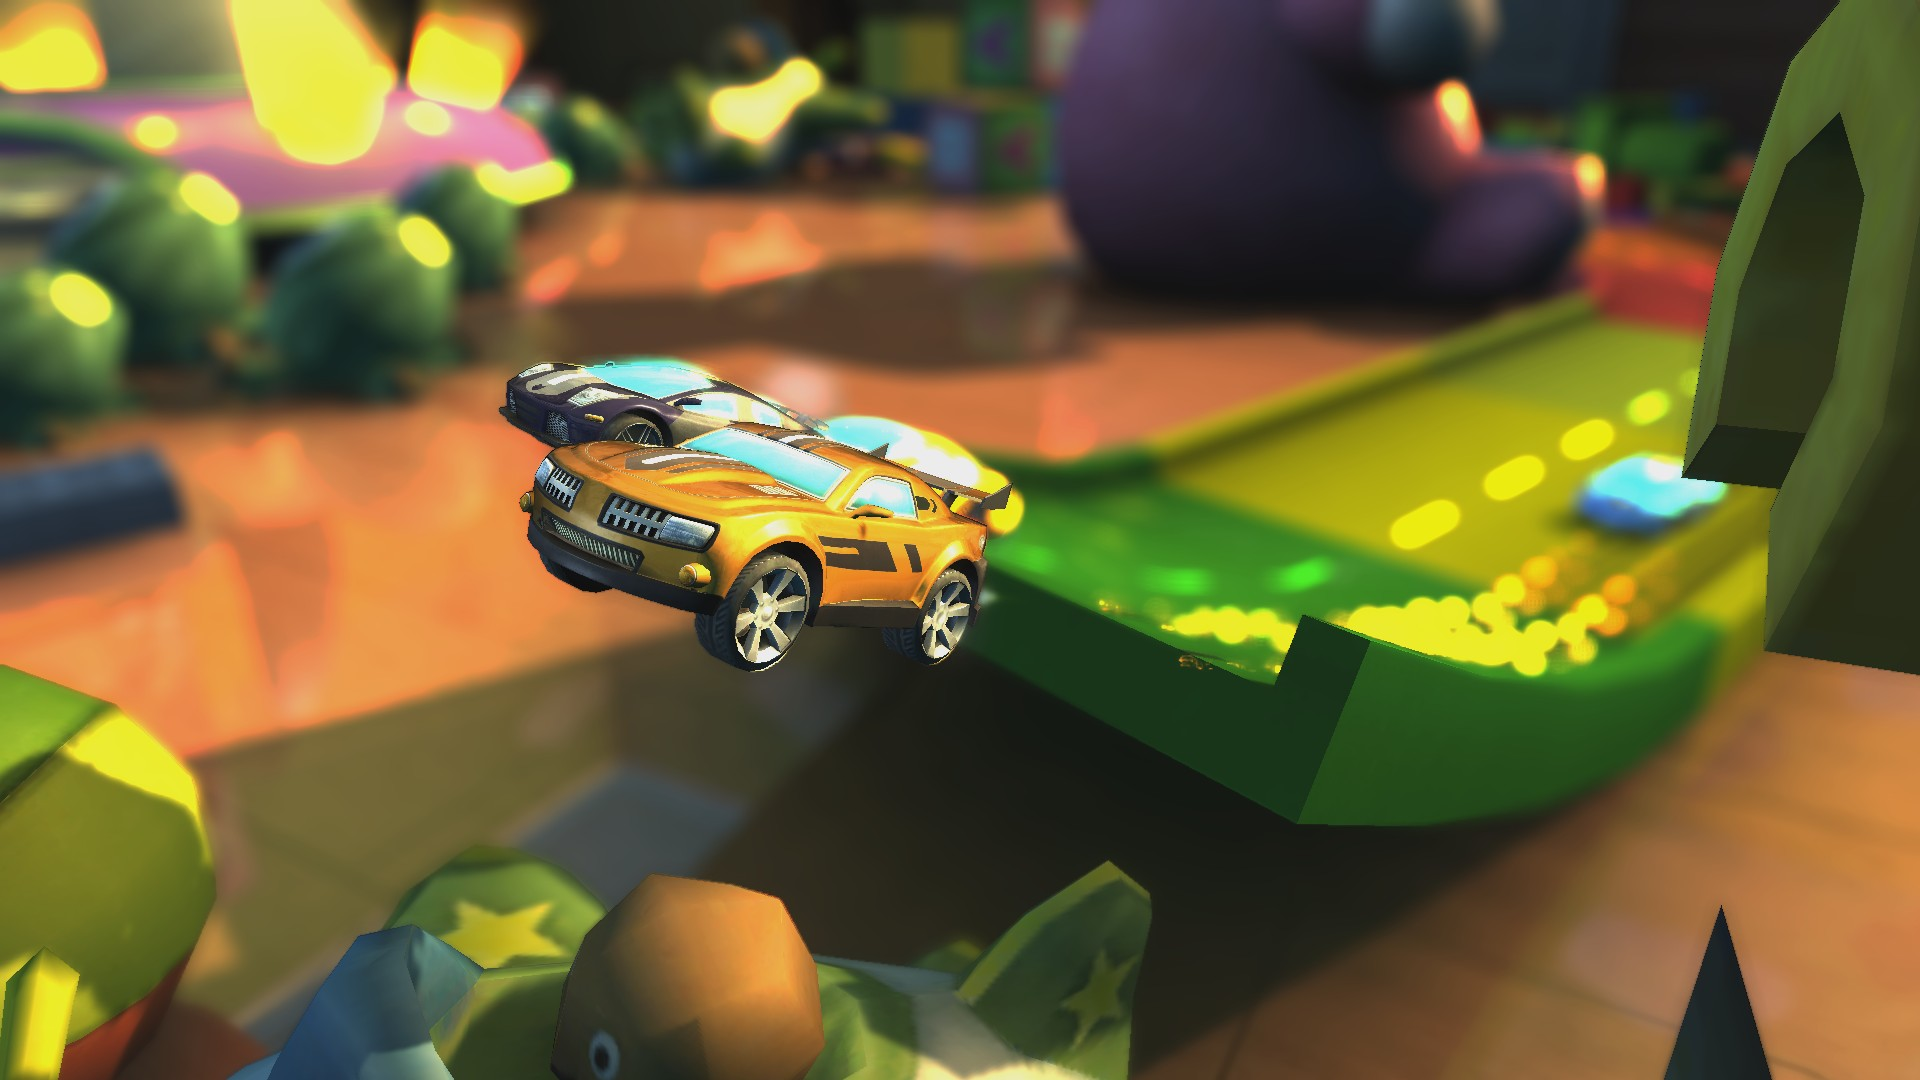 Super Toy Cars - Eclipse Games - Eclipse Games - Blacknut Cloud Gaming